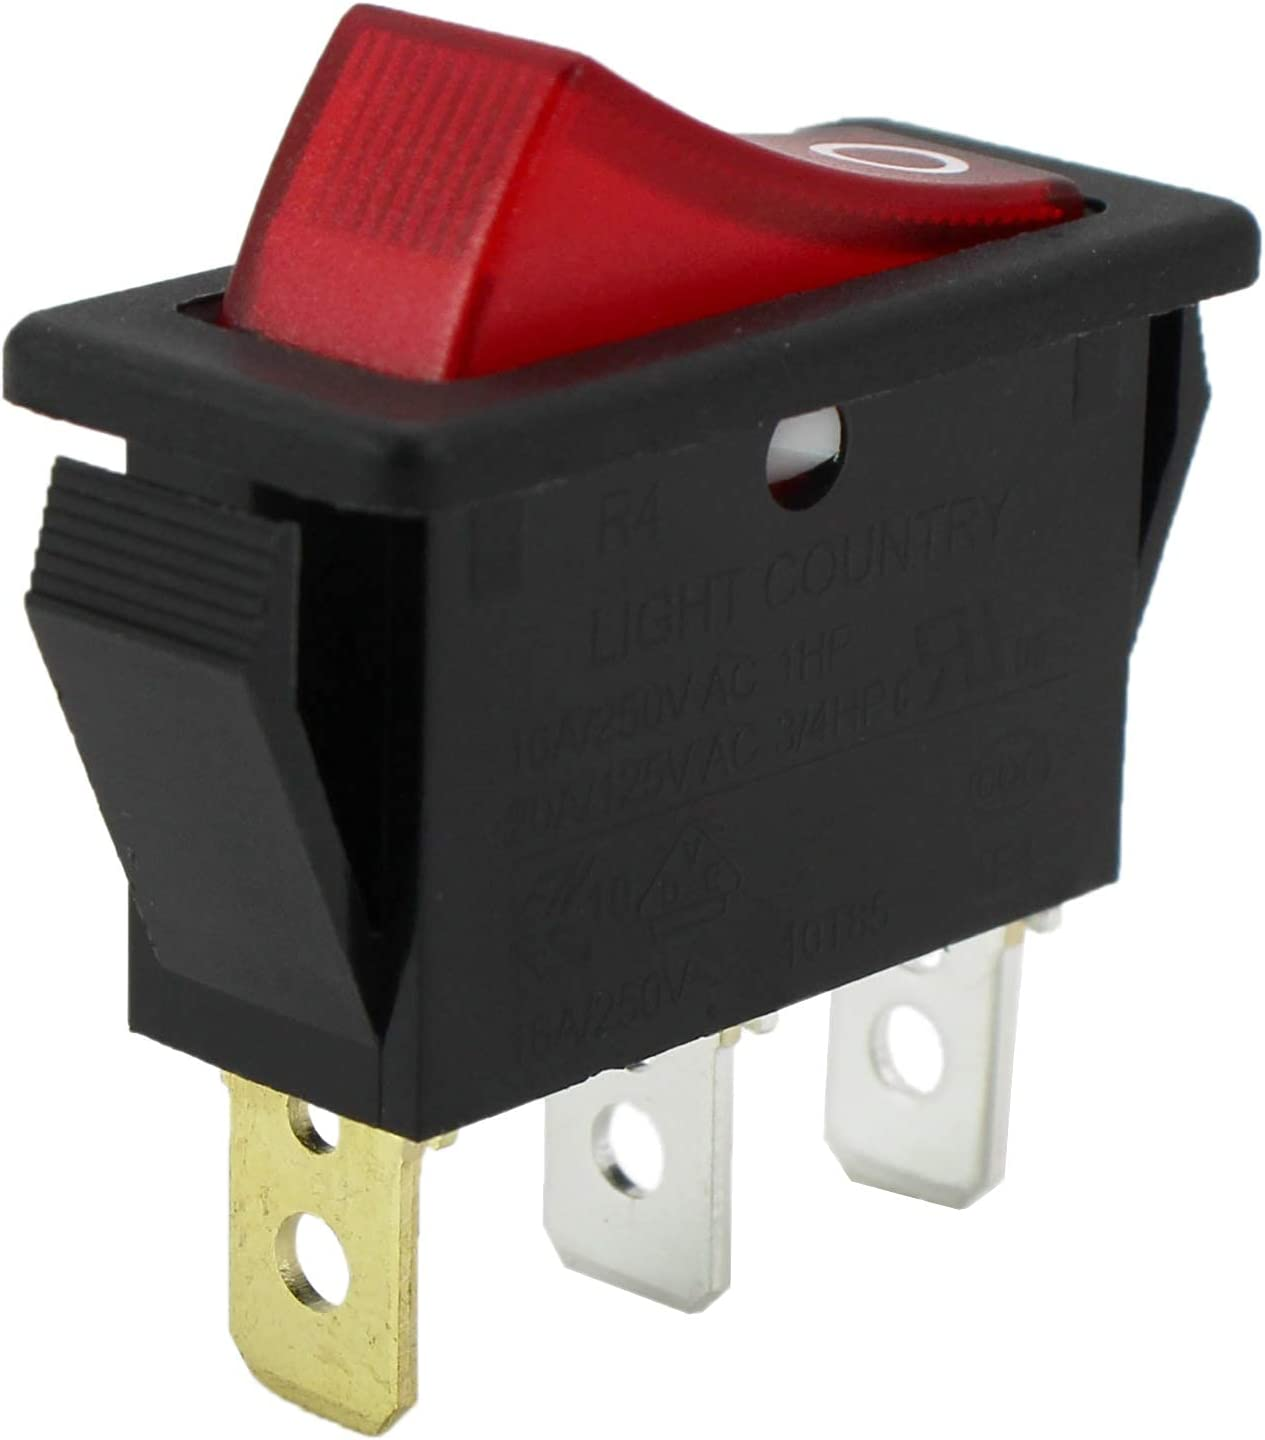 Rocker Switch Lighted On Off for Max 73% OFF free Ele FMI Volt 120927-24 120 Desa